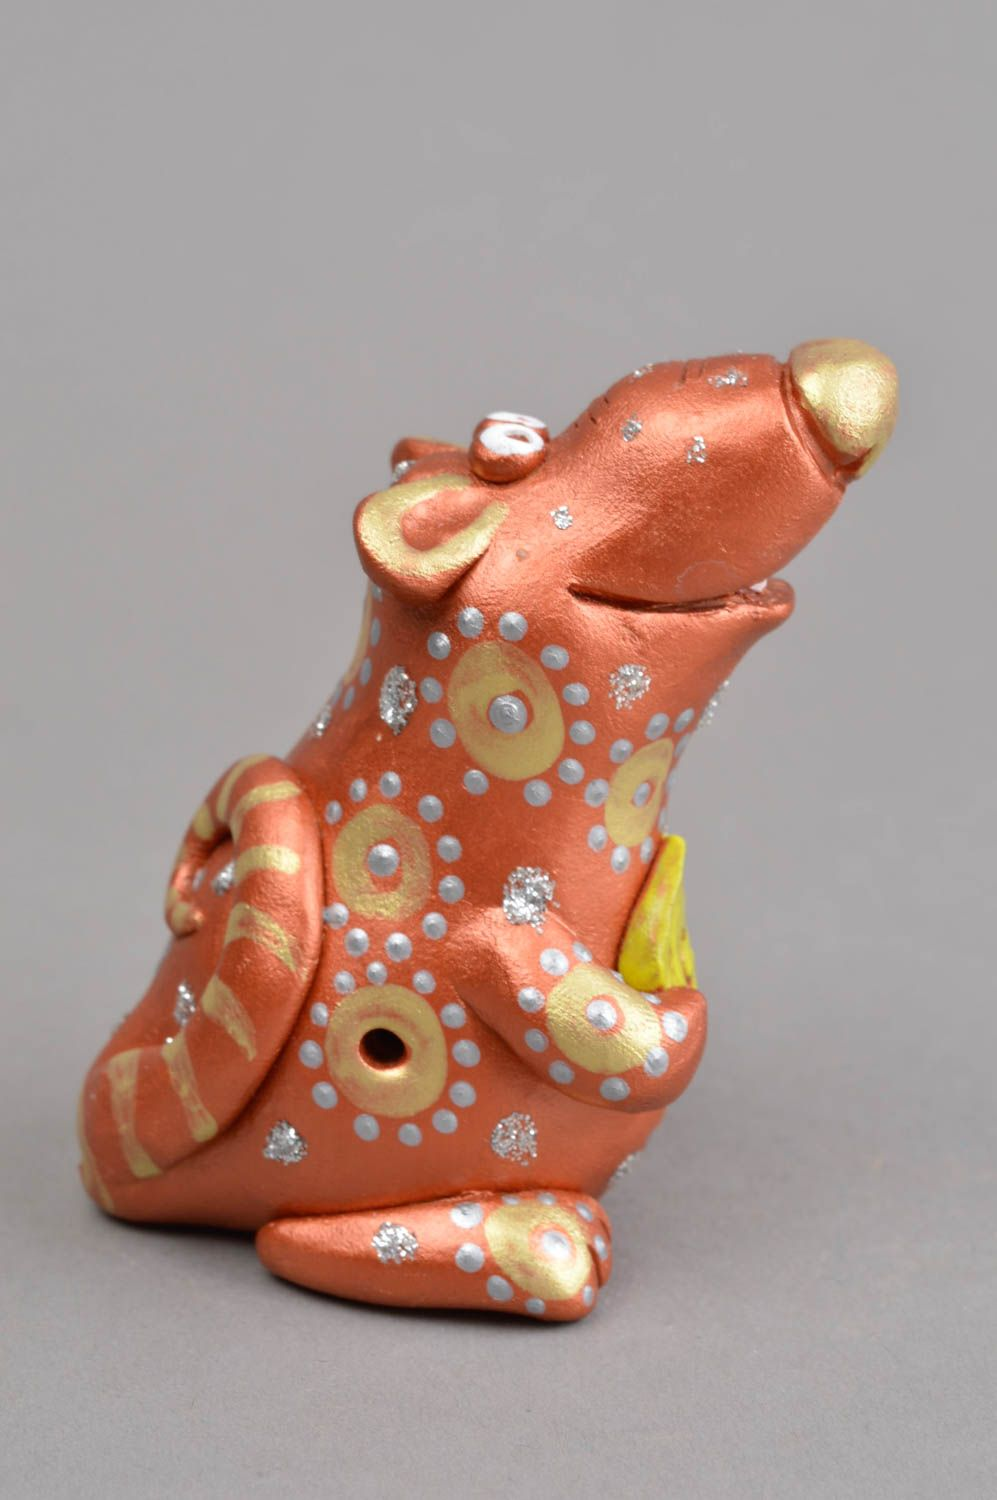 Clay whistle handmade ceramic figurine present for children clay animal whistle photo 3